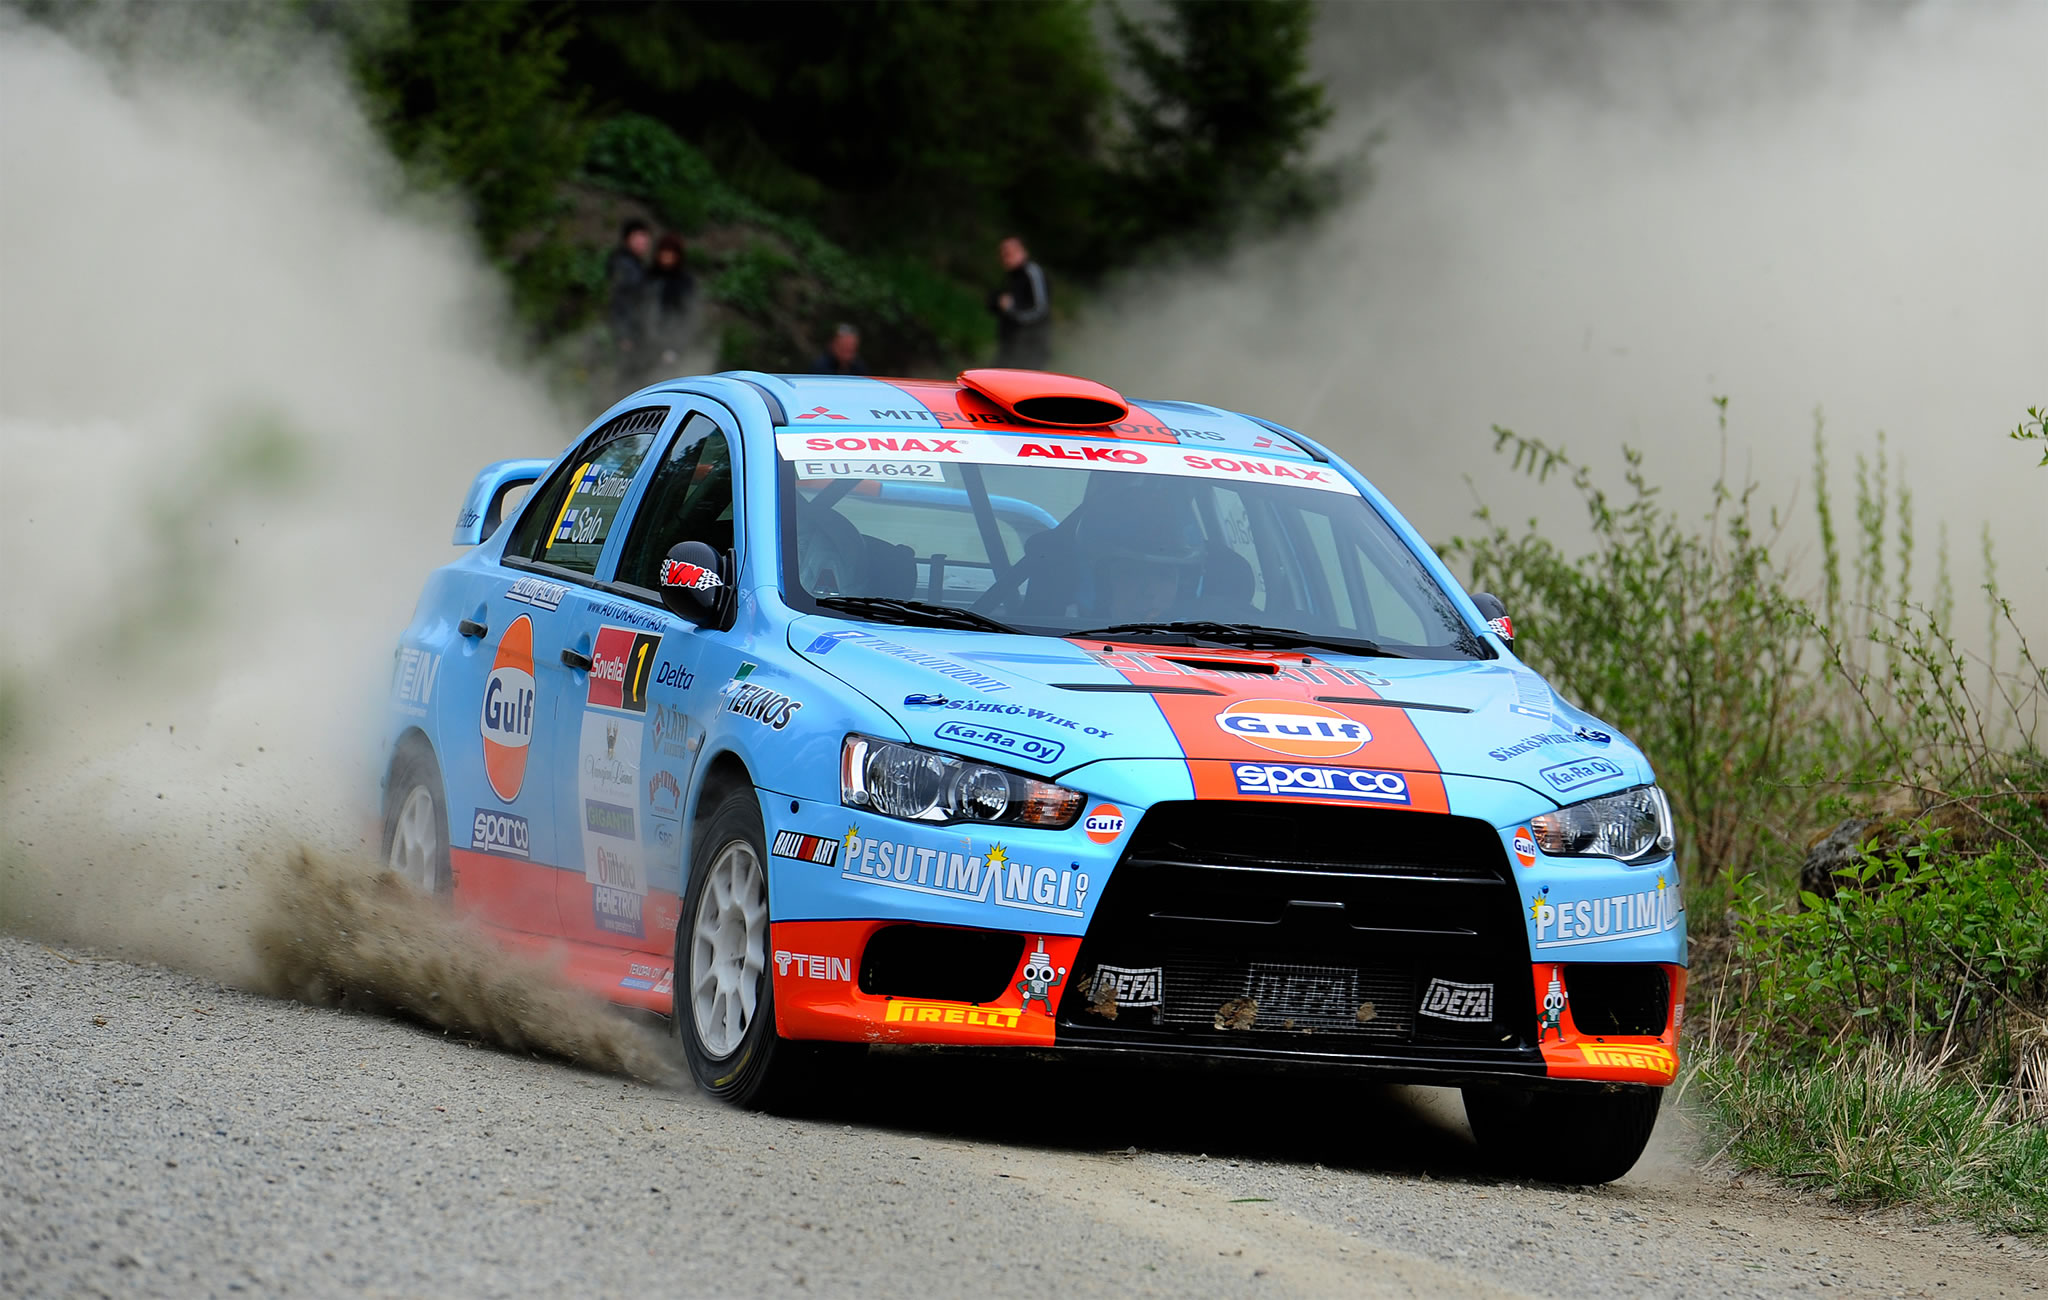 Mitsubishi Lander Evo X in Action - rally car, Gulf Oil livery ...